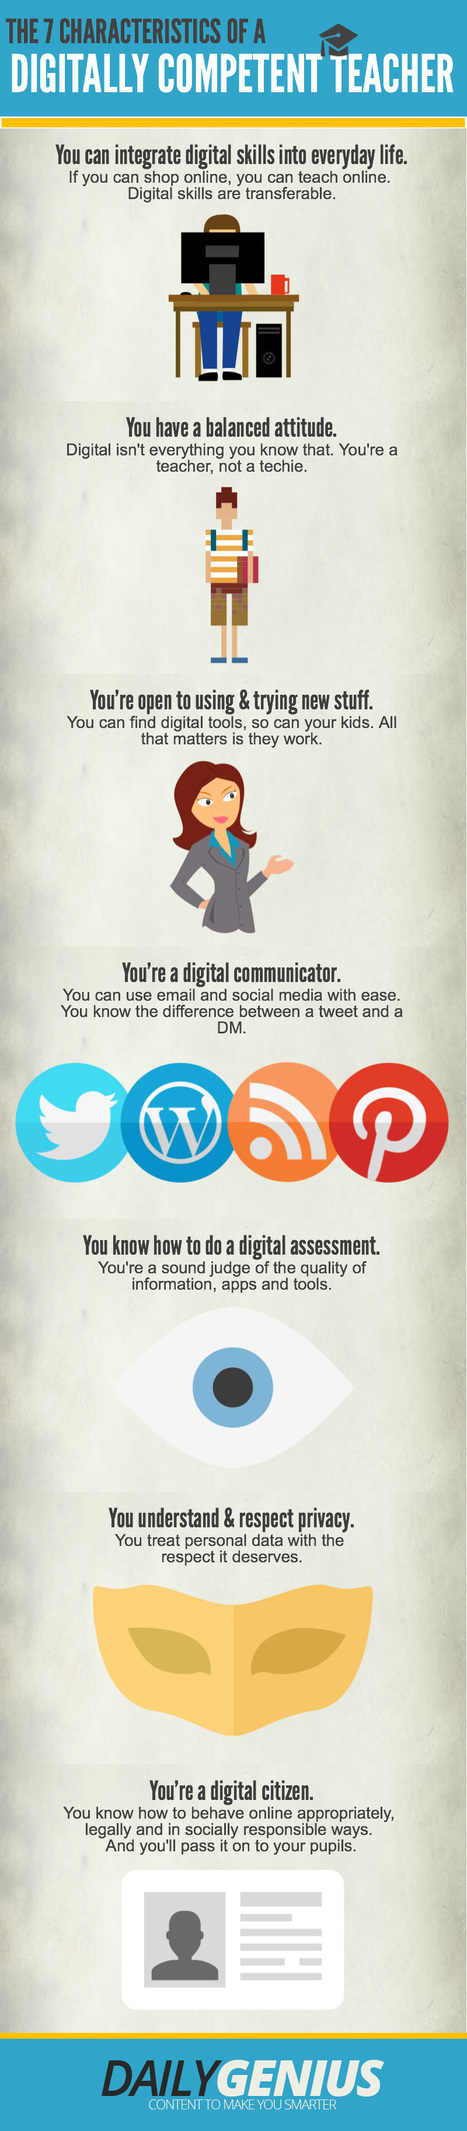 digital-teacher.jpg (800x3650 pixels) | Infographics4Me | Scoop.it